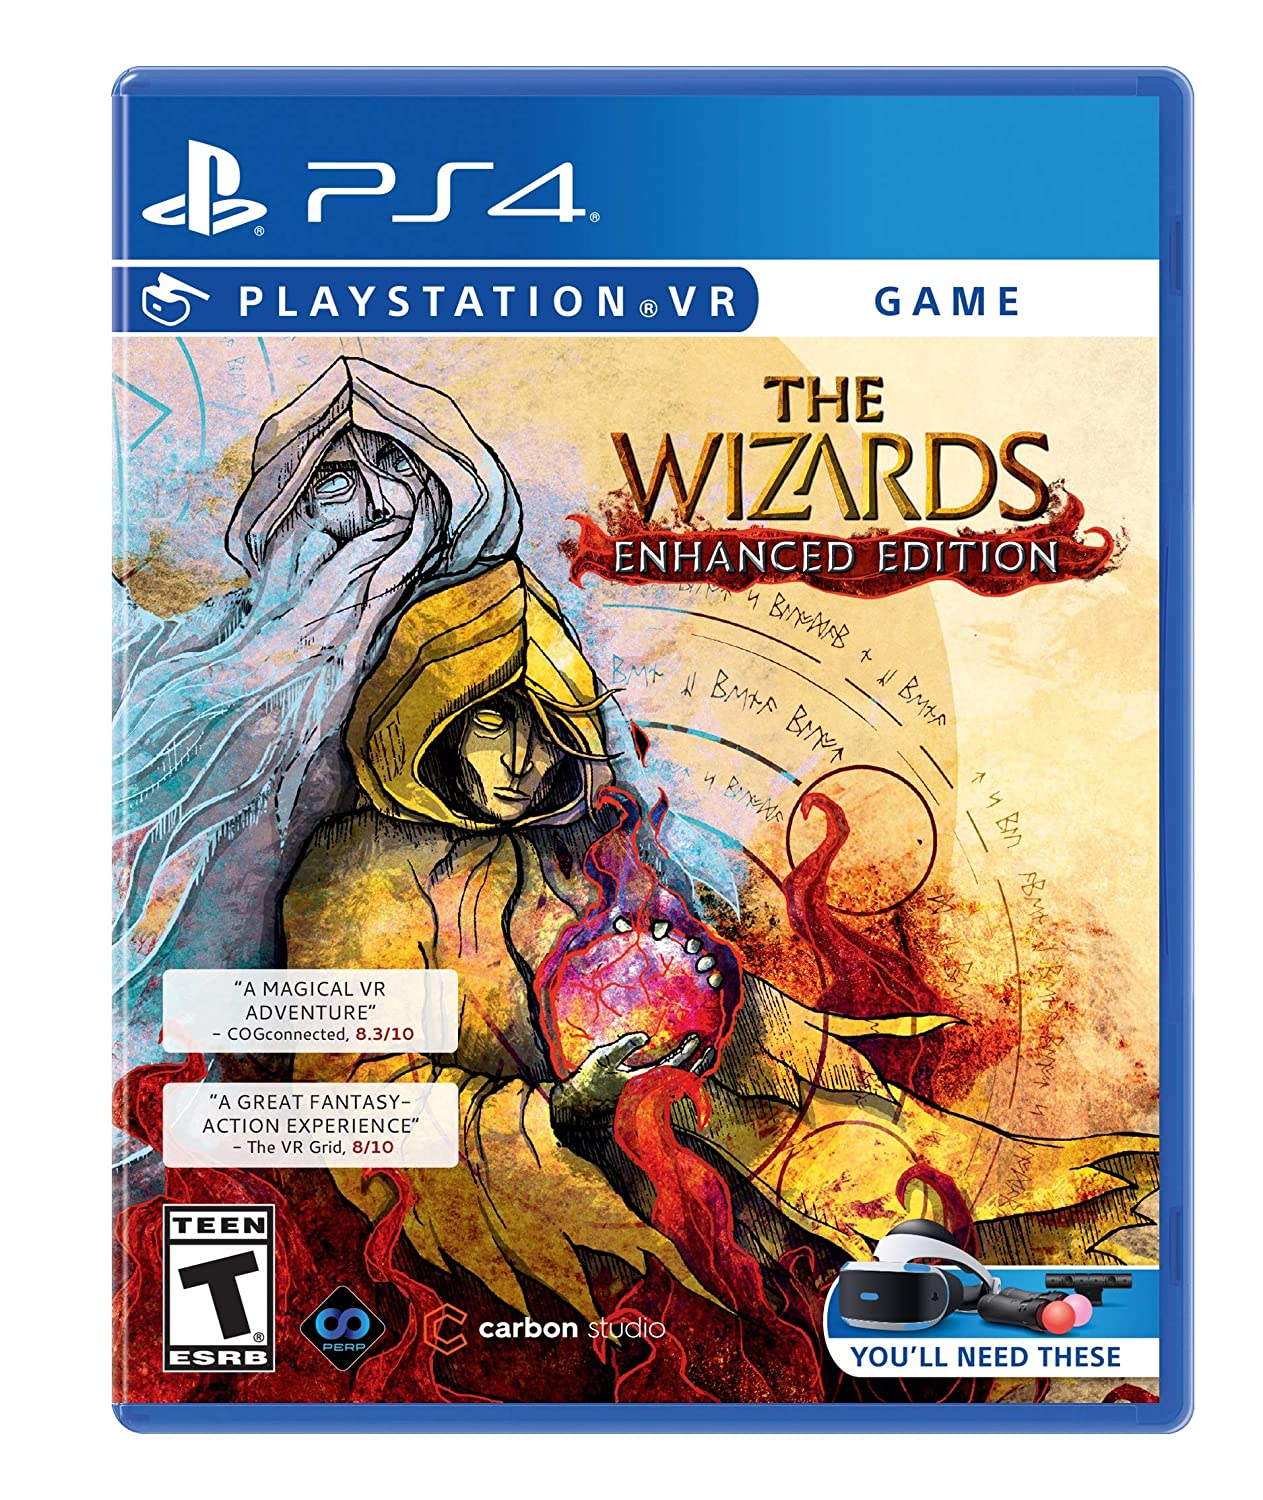 The Wizards Portland Mall - Max 78% OFF 4 PlayStation